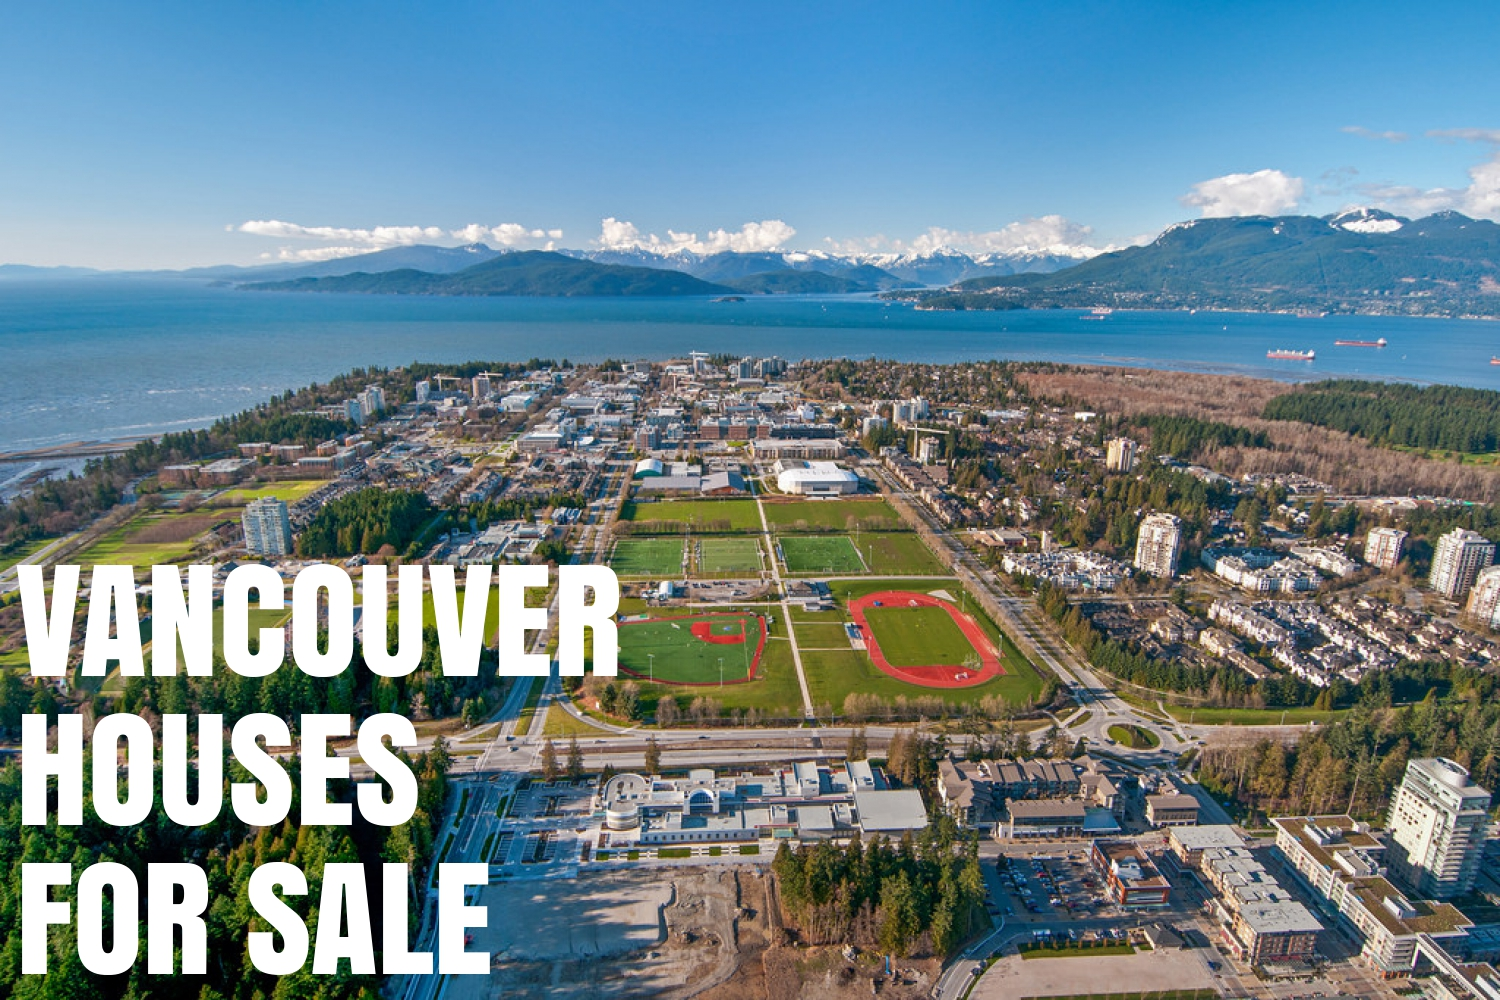 vancouver houses for sale aerial view